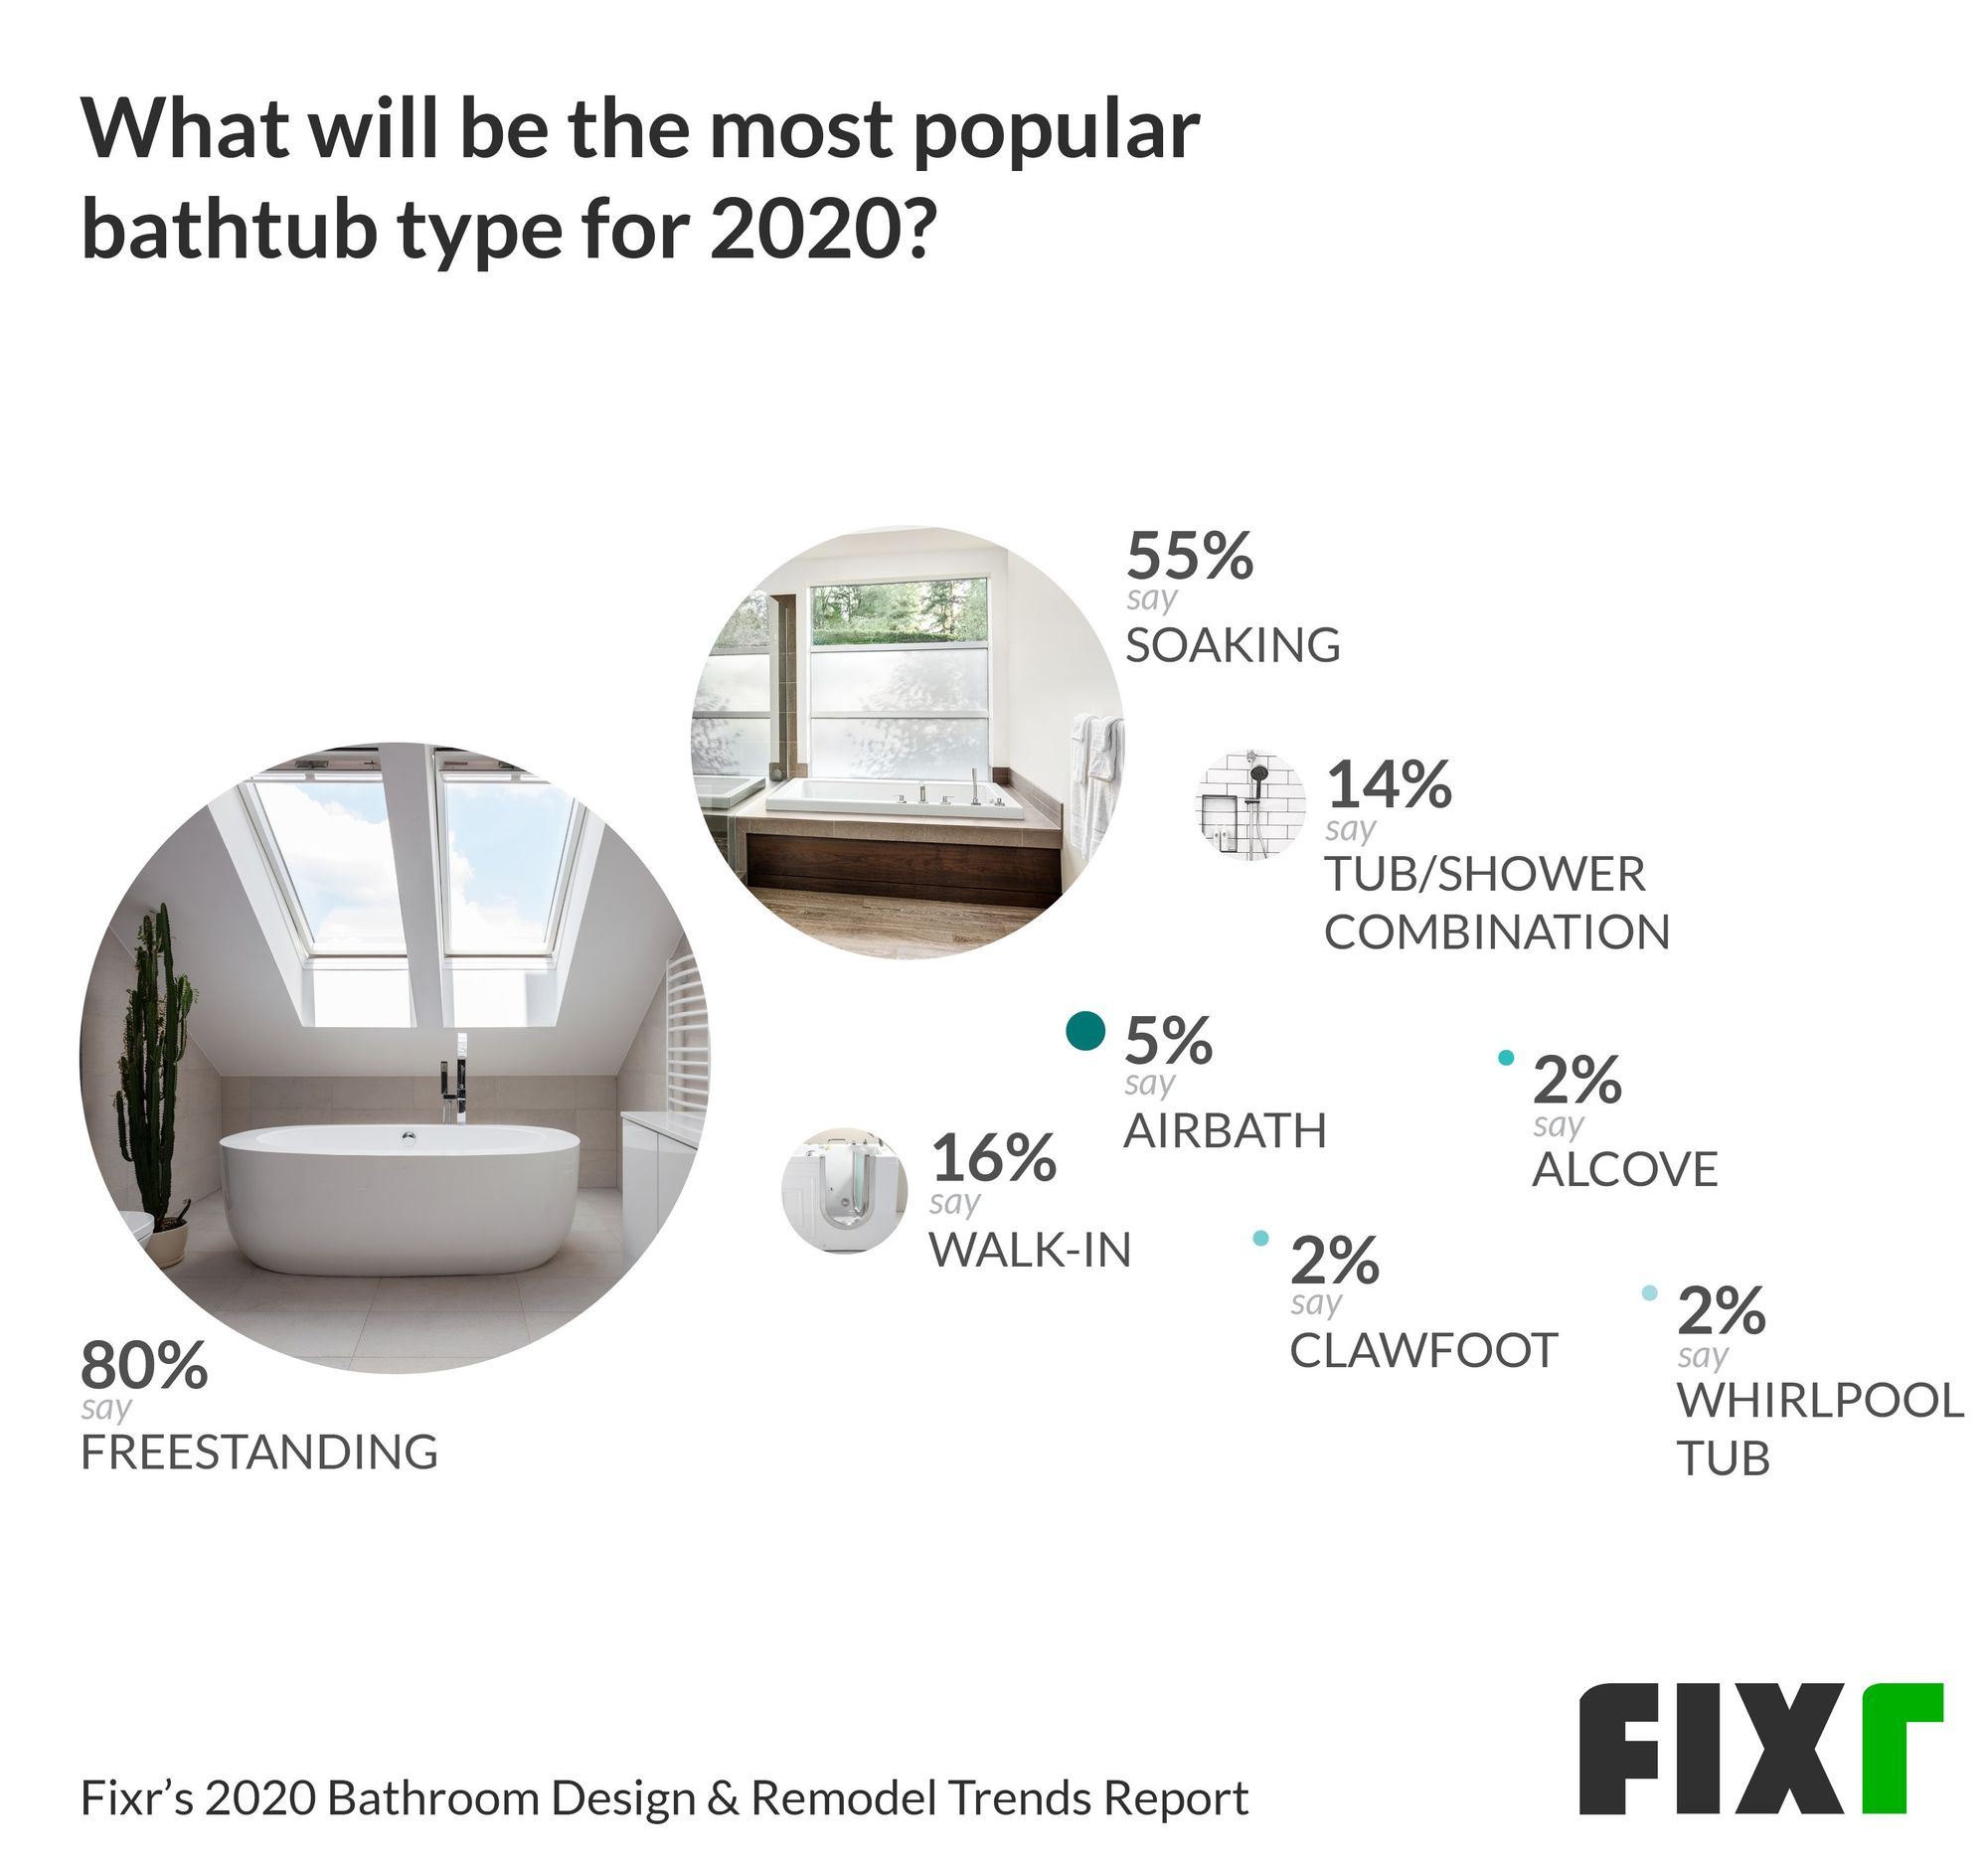 Most Popular Bathtub type in 2020